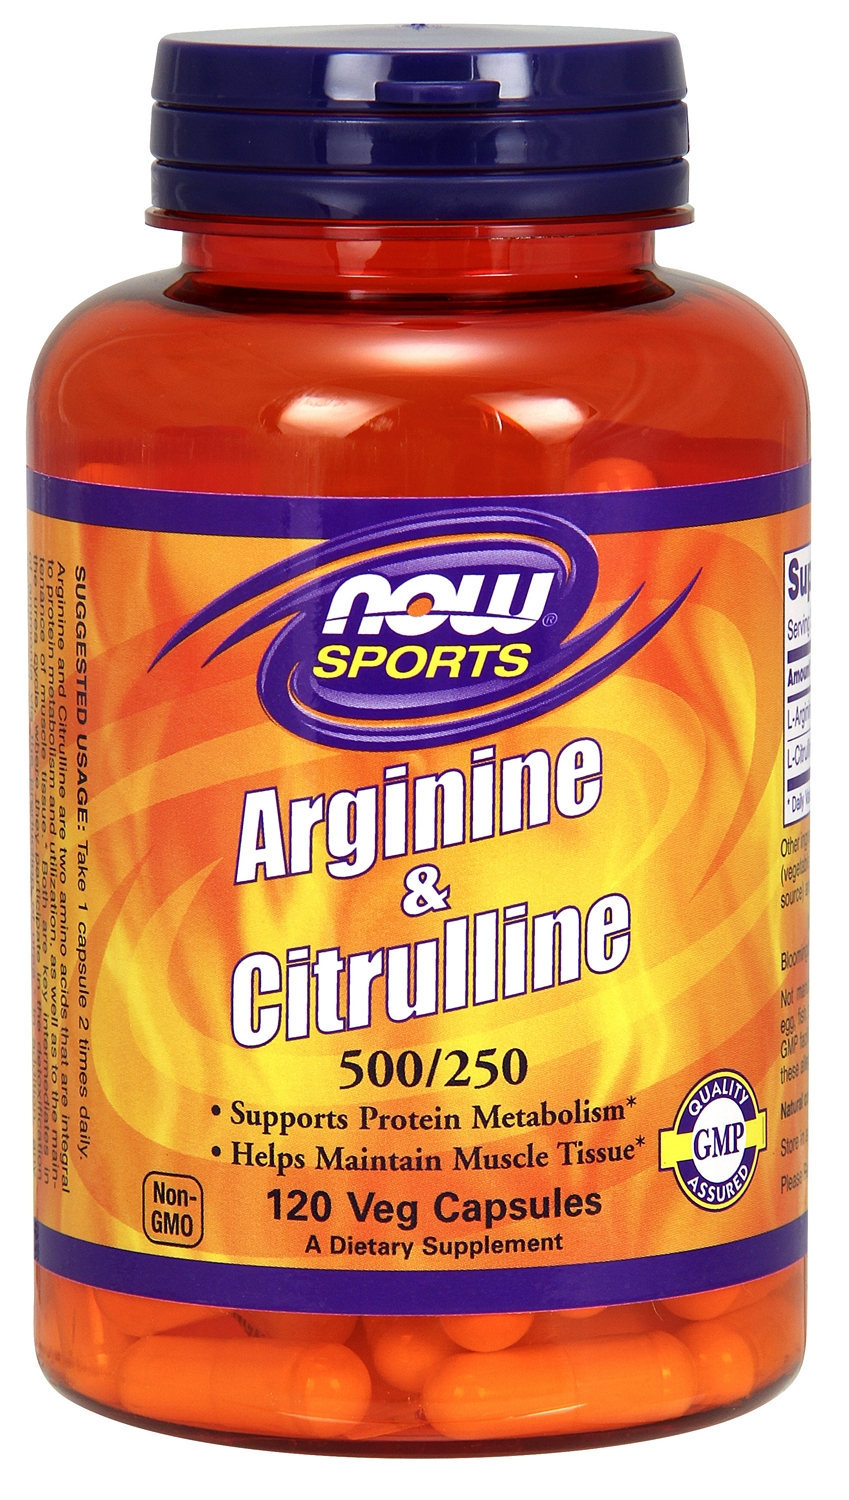 Arginine & Citrulline 500/250 120 caps by NOW